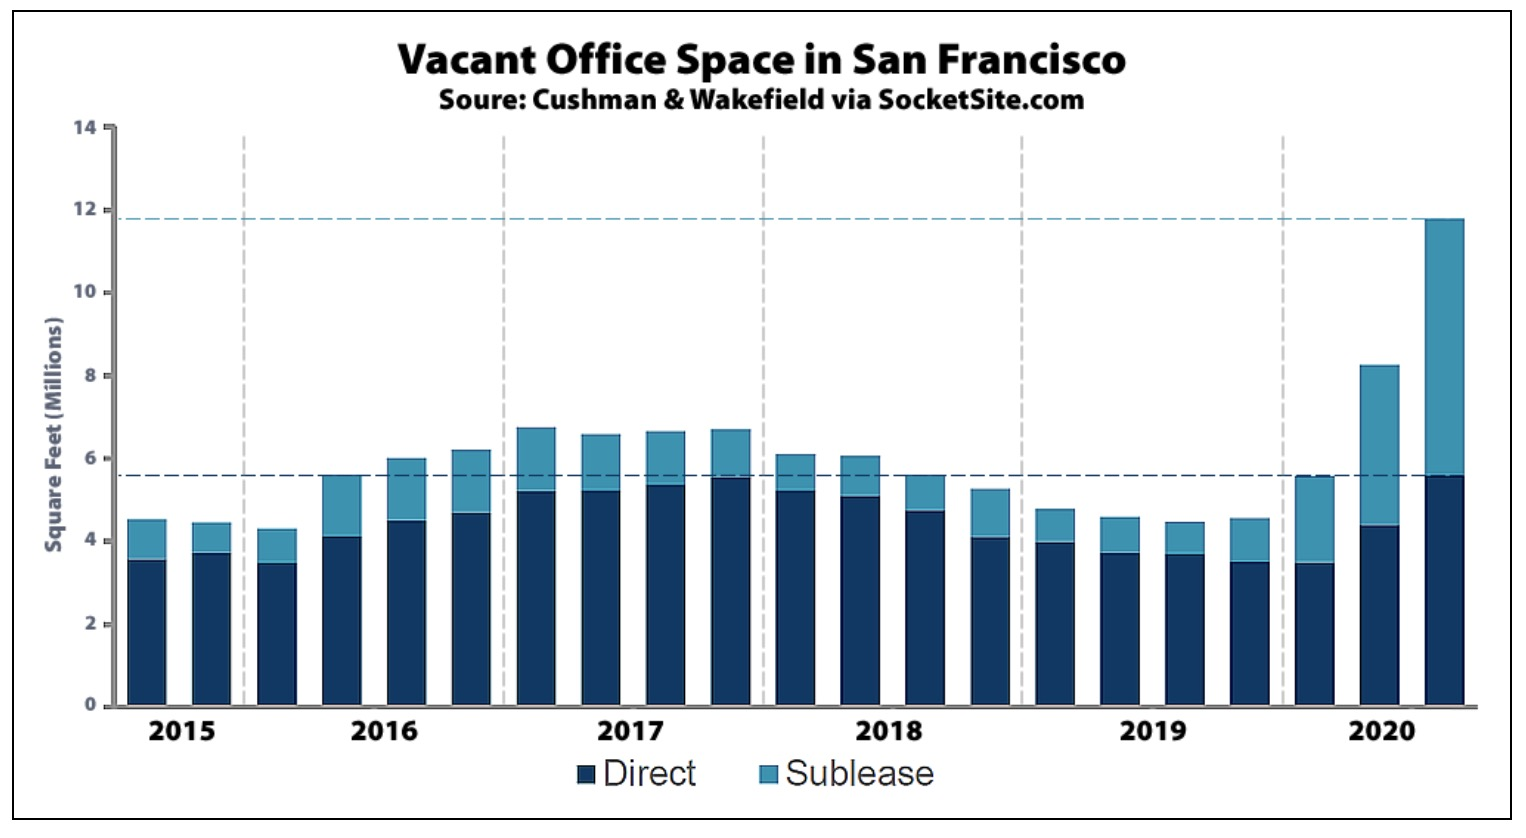 Vacant office space in San Francisco doubled to 12 million square feet in 2020